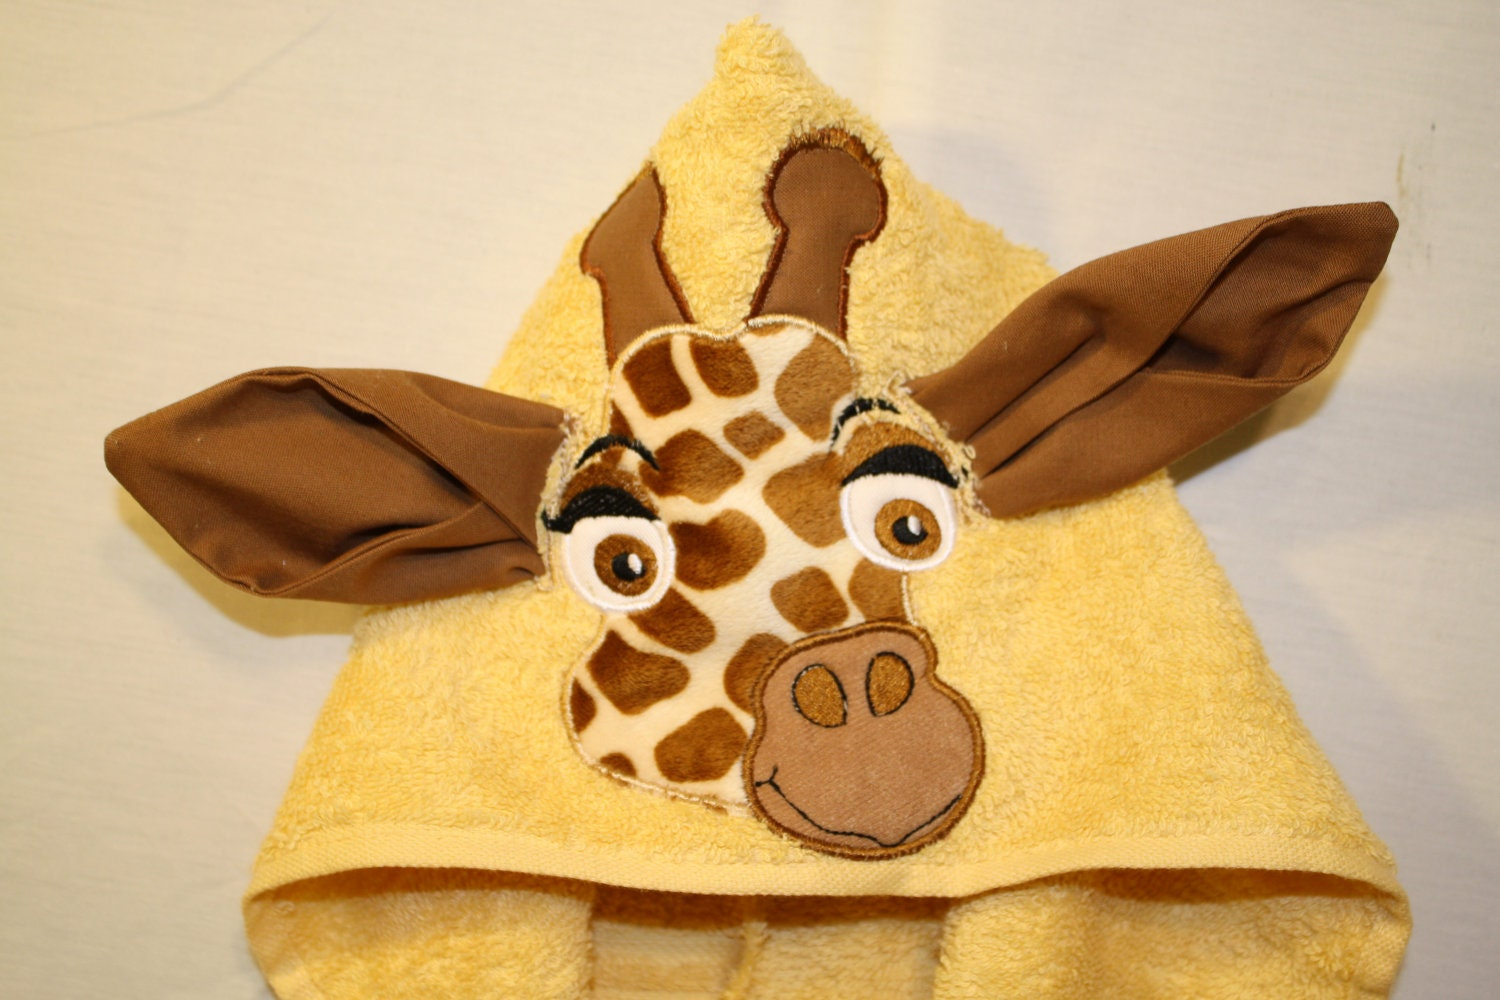 custom embroidered giraffe hooded towel by personalizepeacock